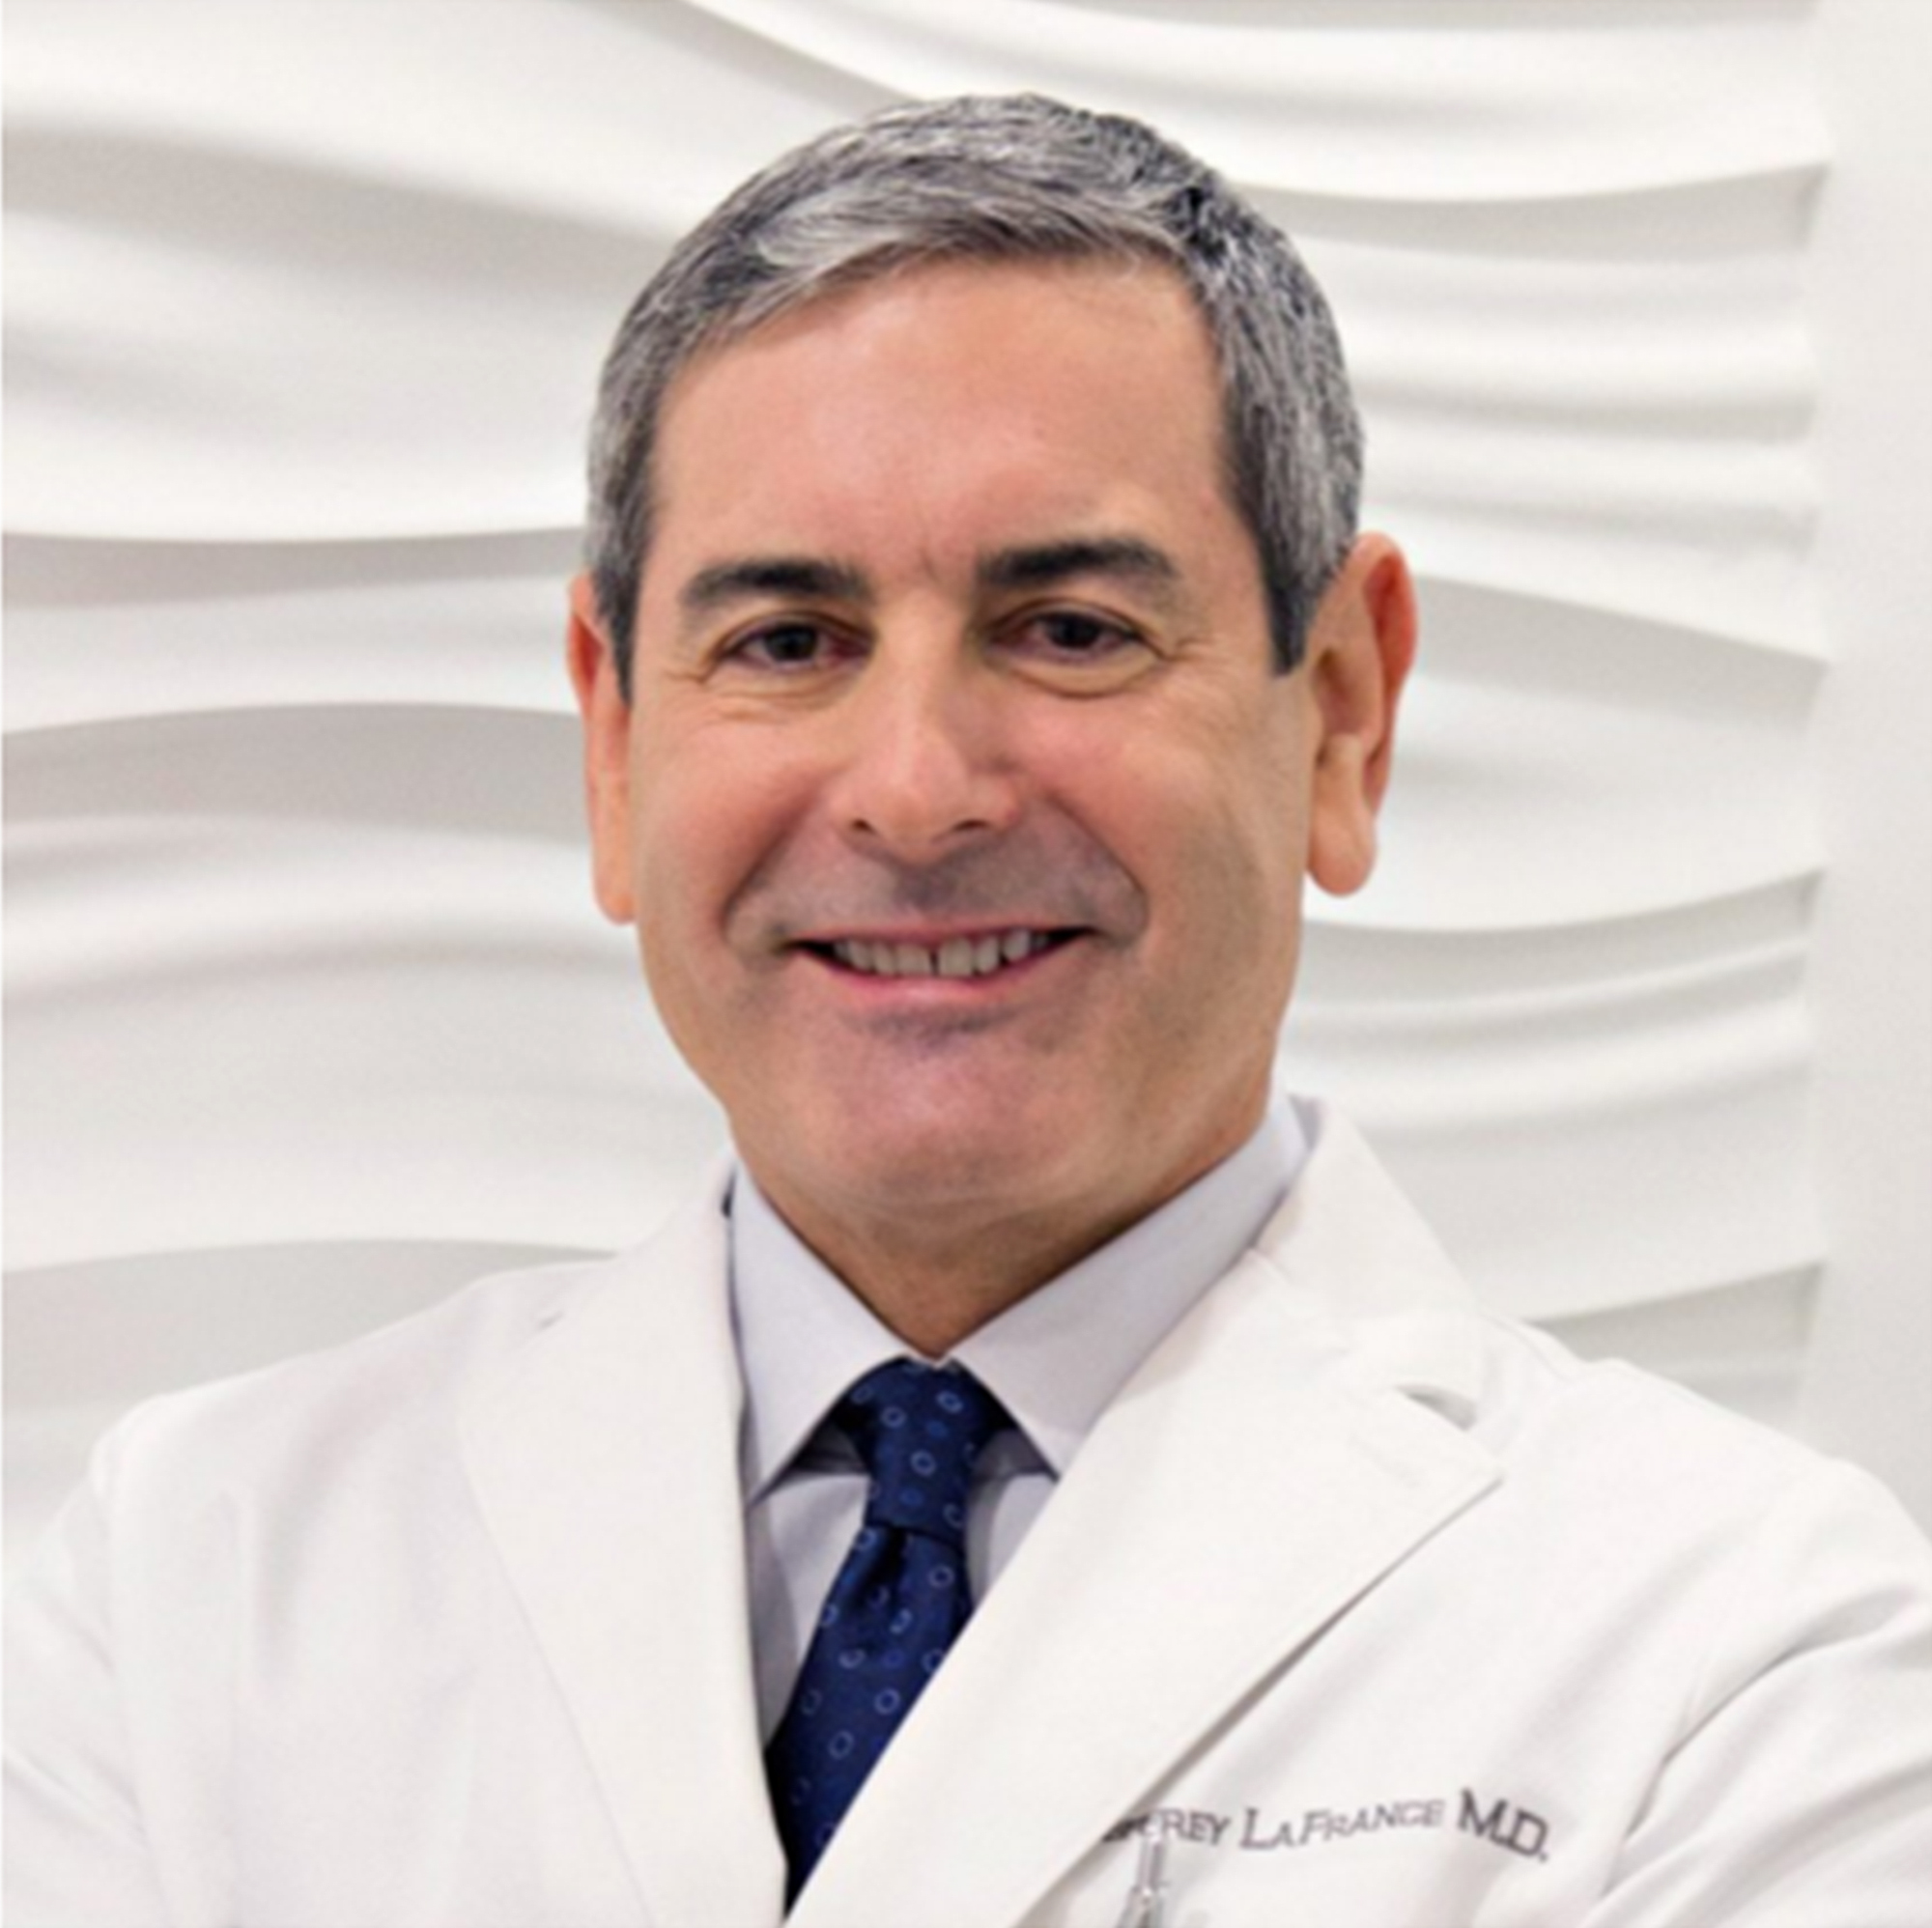 Dr. Jeffrey LaFrance, M.D. | LaFrance Medical Aesthetics